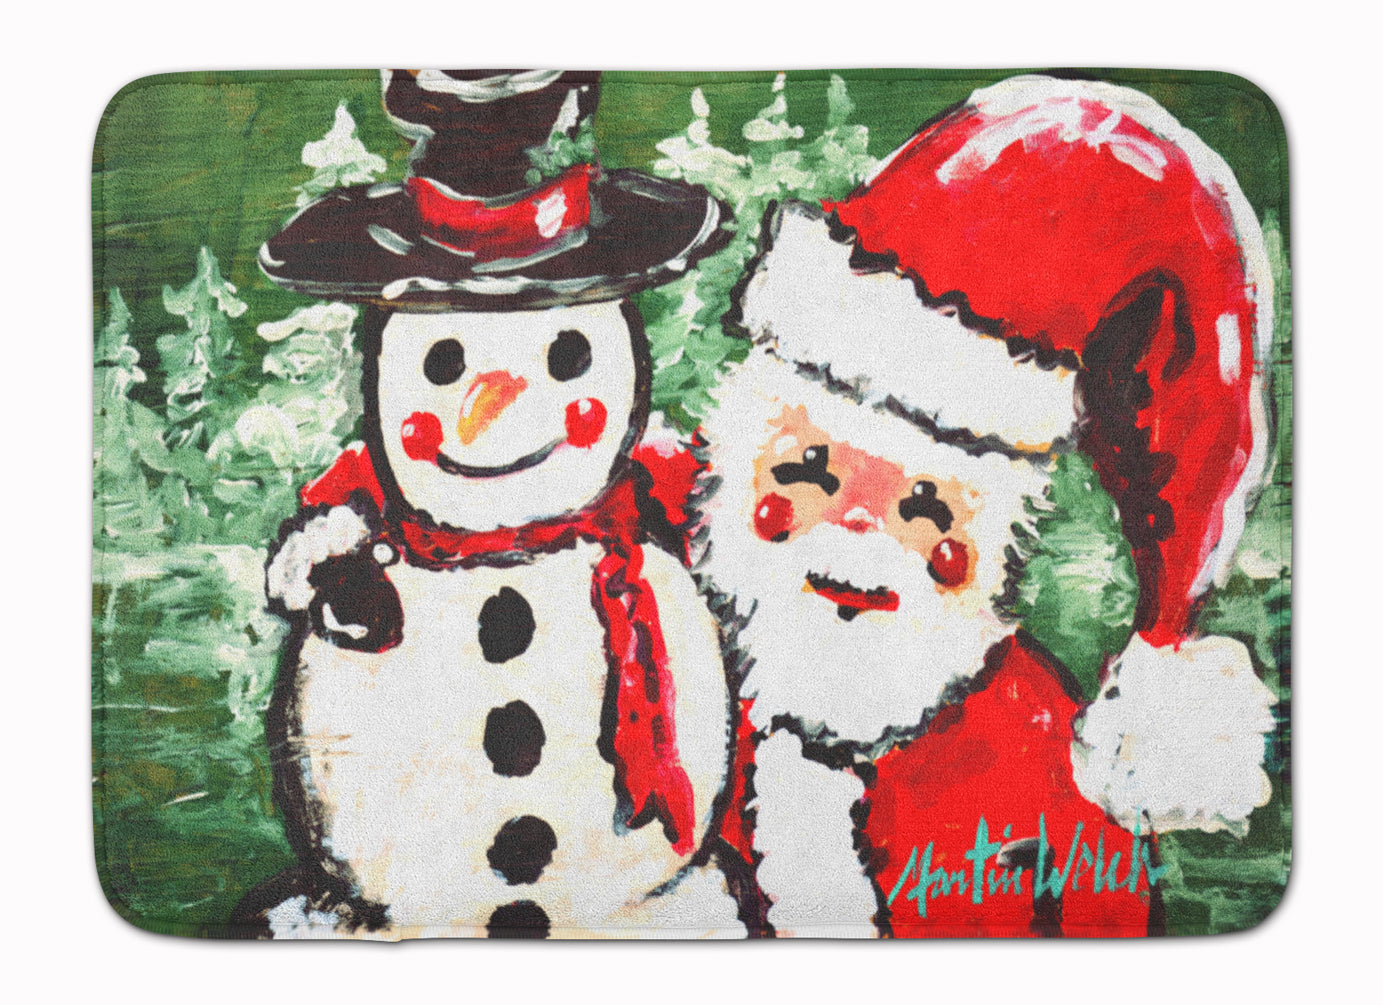 Friends Snowman and Santa Claus Machine Washable Memory Foam Mat MW1167RUG by Caroline's Treasures